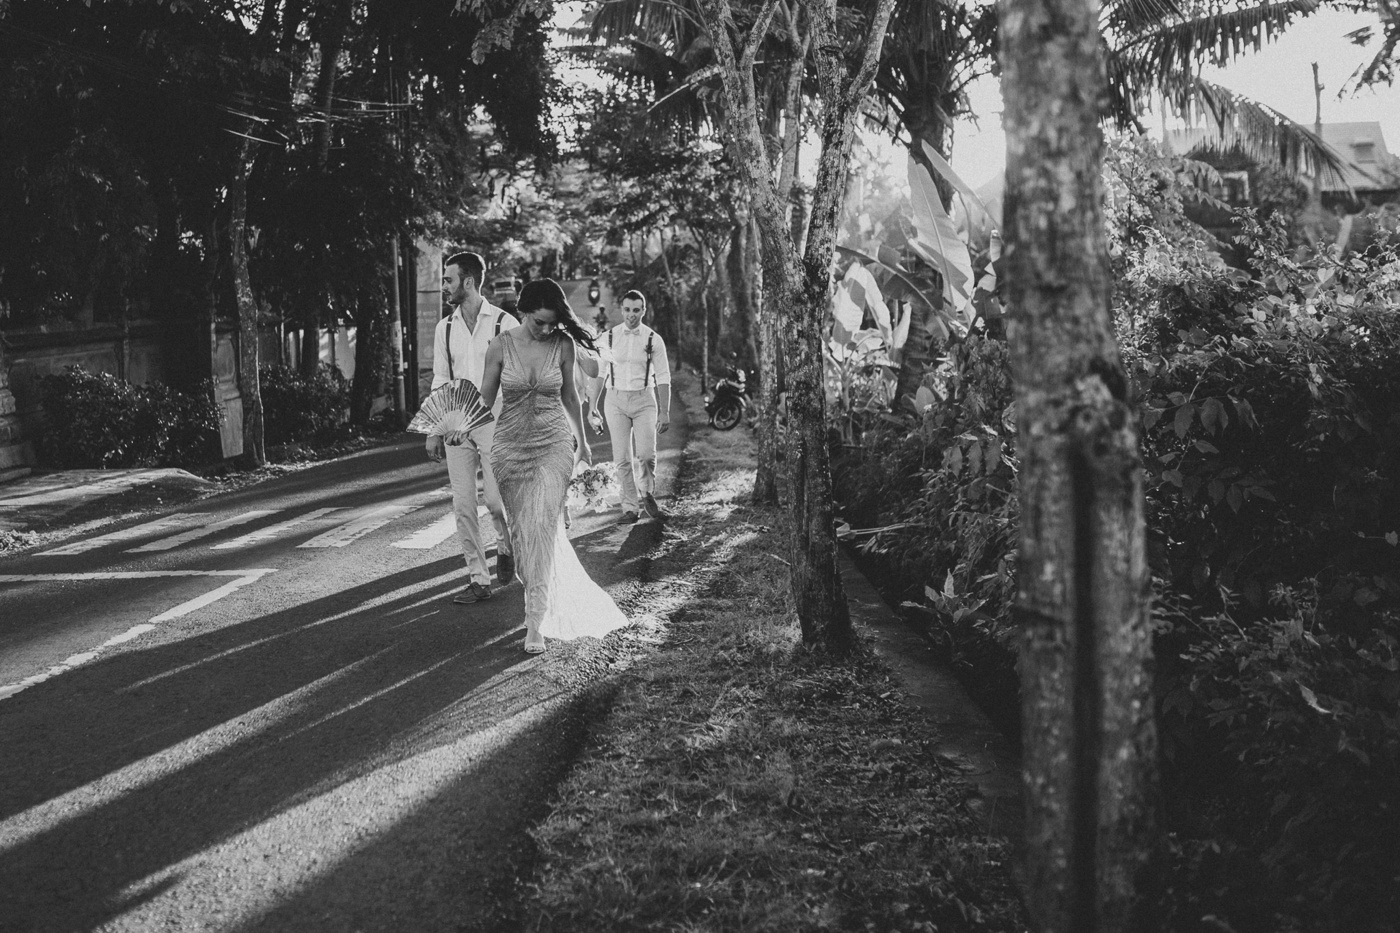 Deb-Ibs_Bali-Tropical-Relaxed-Wedding_Destination-Wedding-Photography_Melbourne-Wedding-Photographer_82